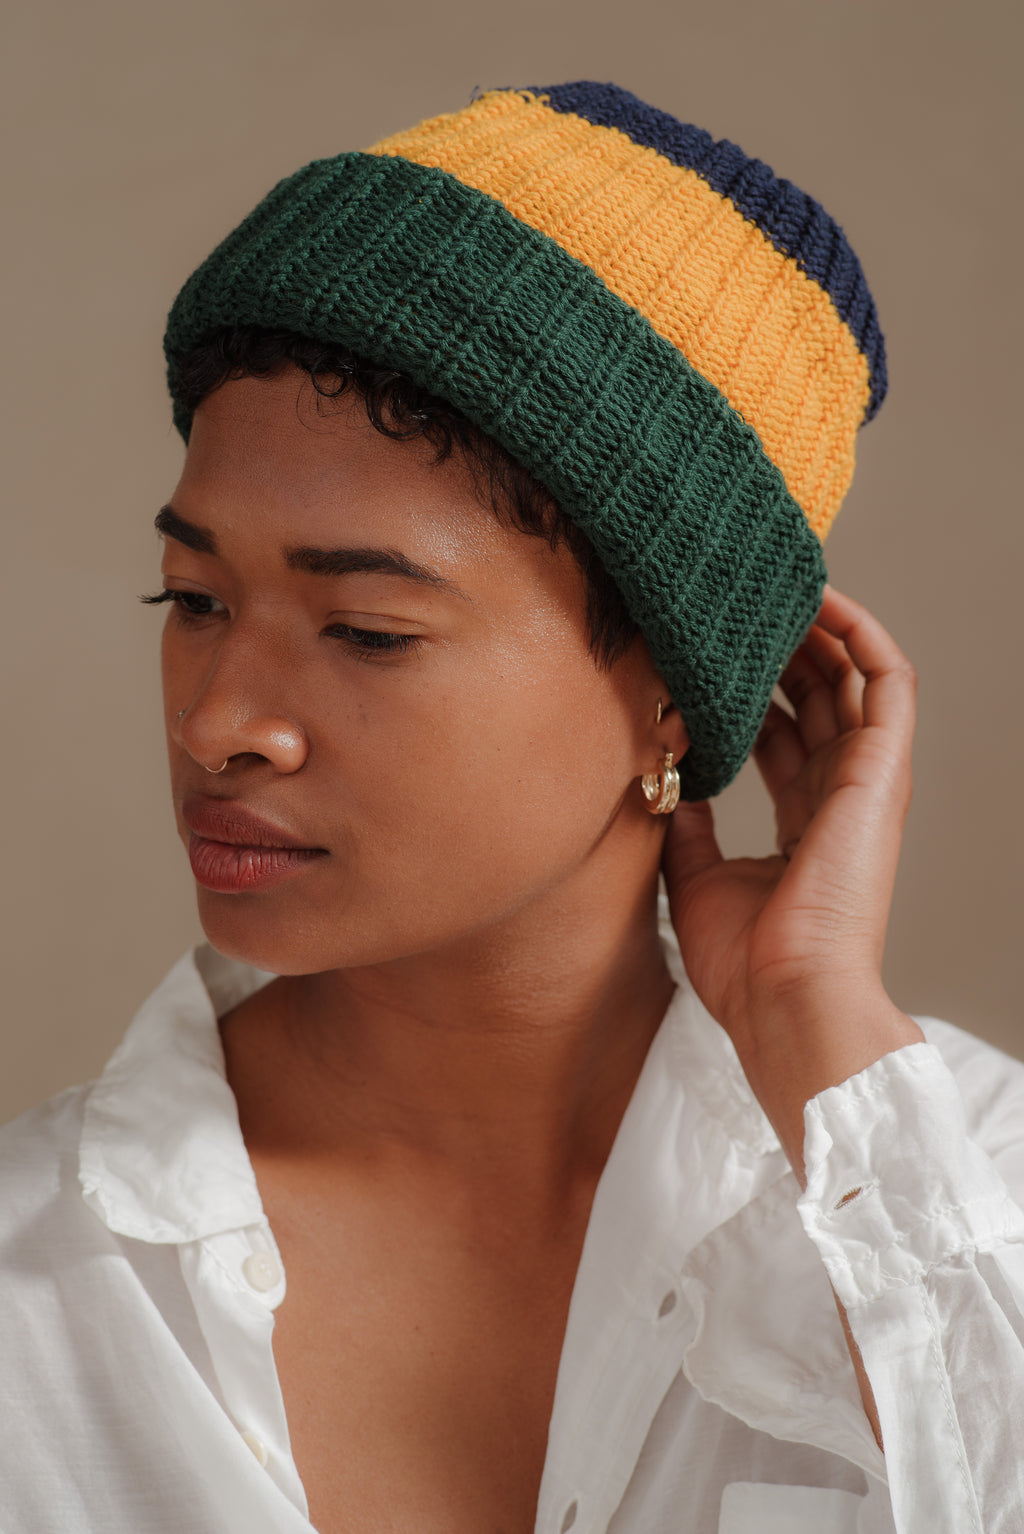 Reliquary | NAVY + GOLD + EVERGREEN KNIT HAT